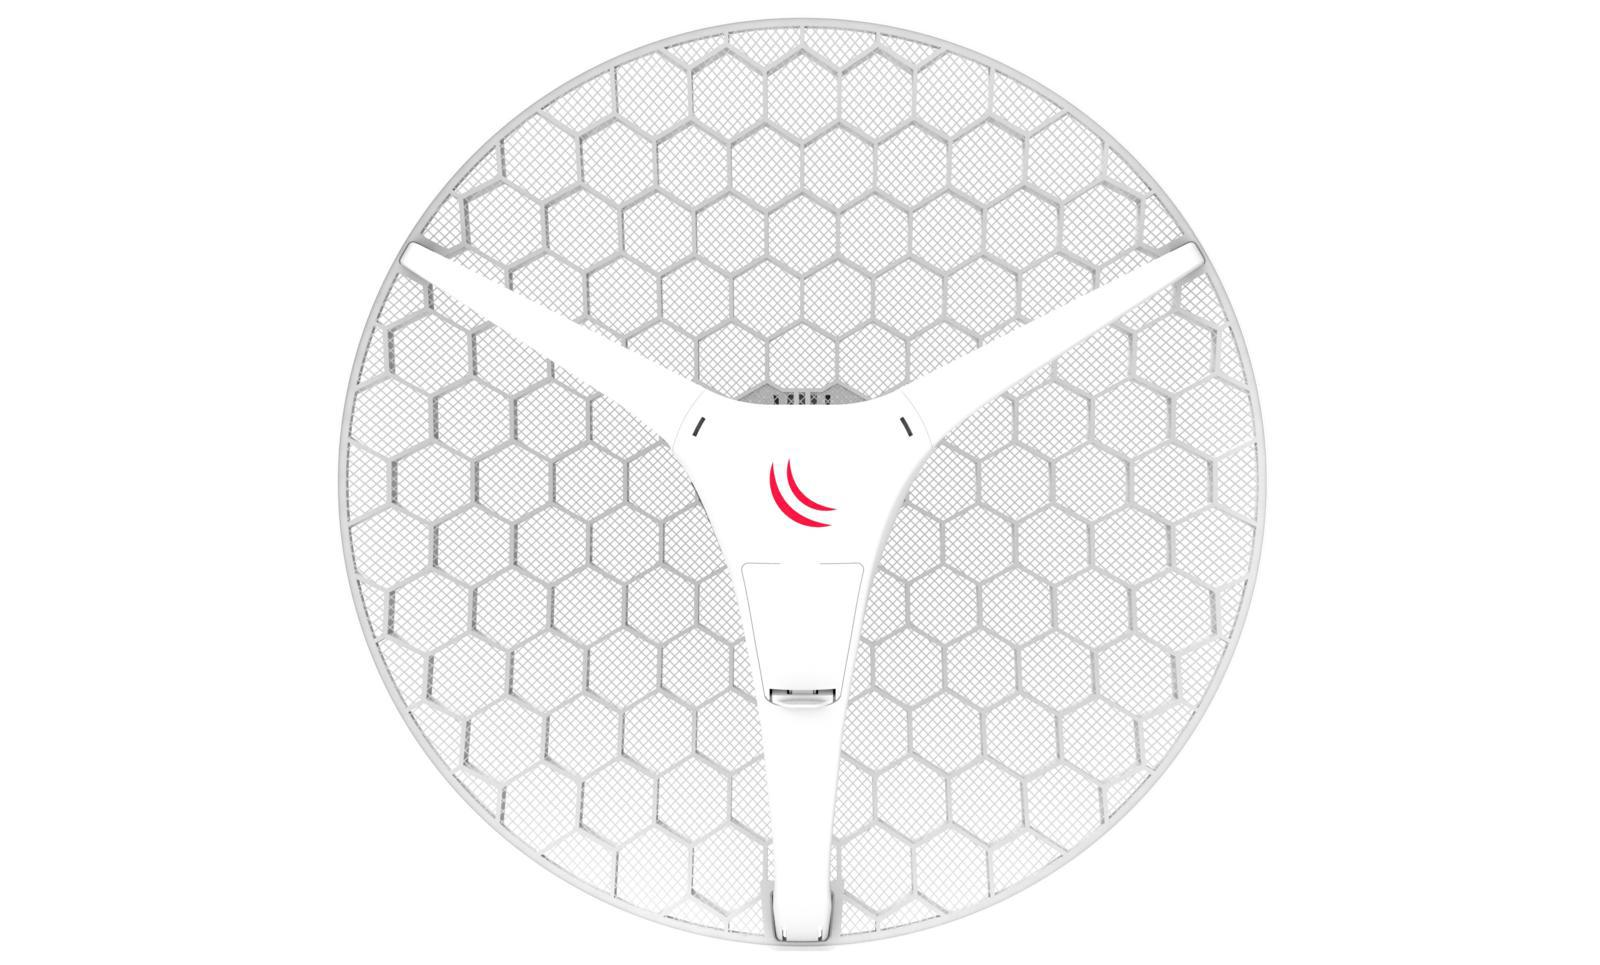 SICE Distributore Ufficiale  Wireless systems RBLHG-5HPnD-XL with 27dBi 5GHz antenna, Dual Chain High Power | RBLHG XL HP5